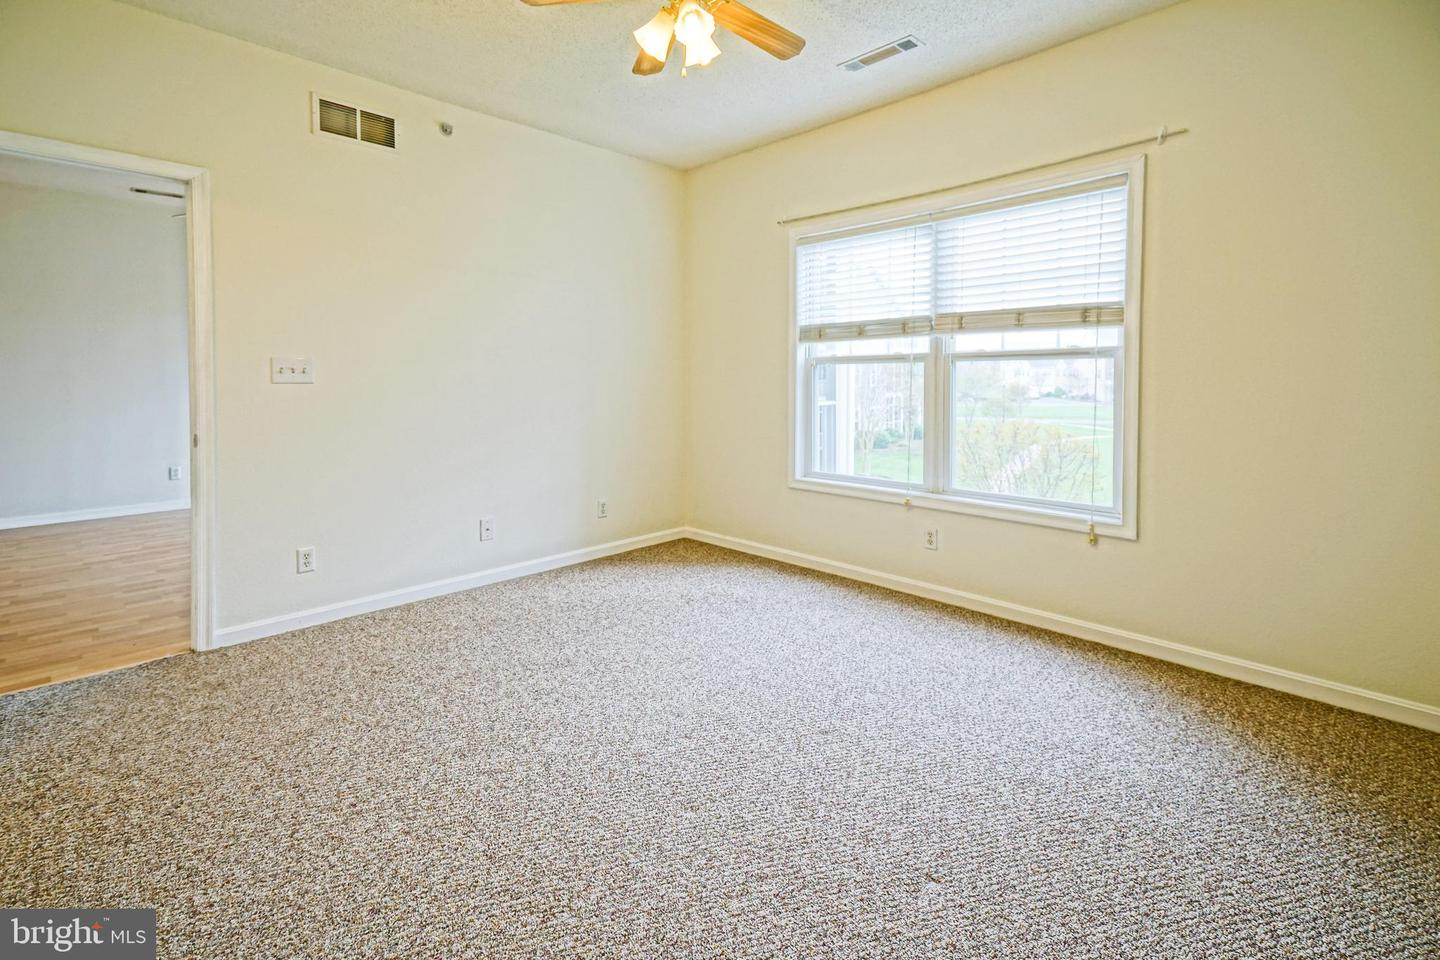 DESU139032-301664482978-2019-06-24-14-51-57 33156 N Village Loop #4202 | Lewes, DE Real Estate For Sale | MLS# Desu139032  - Lee Ann Group